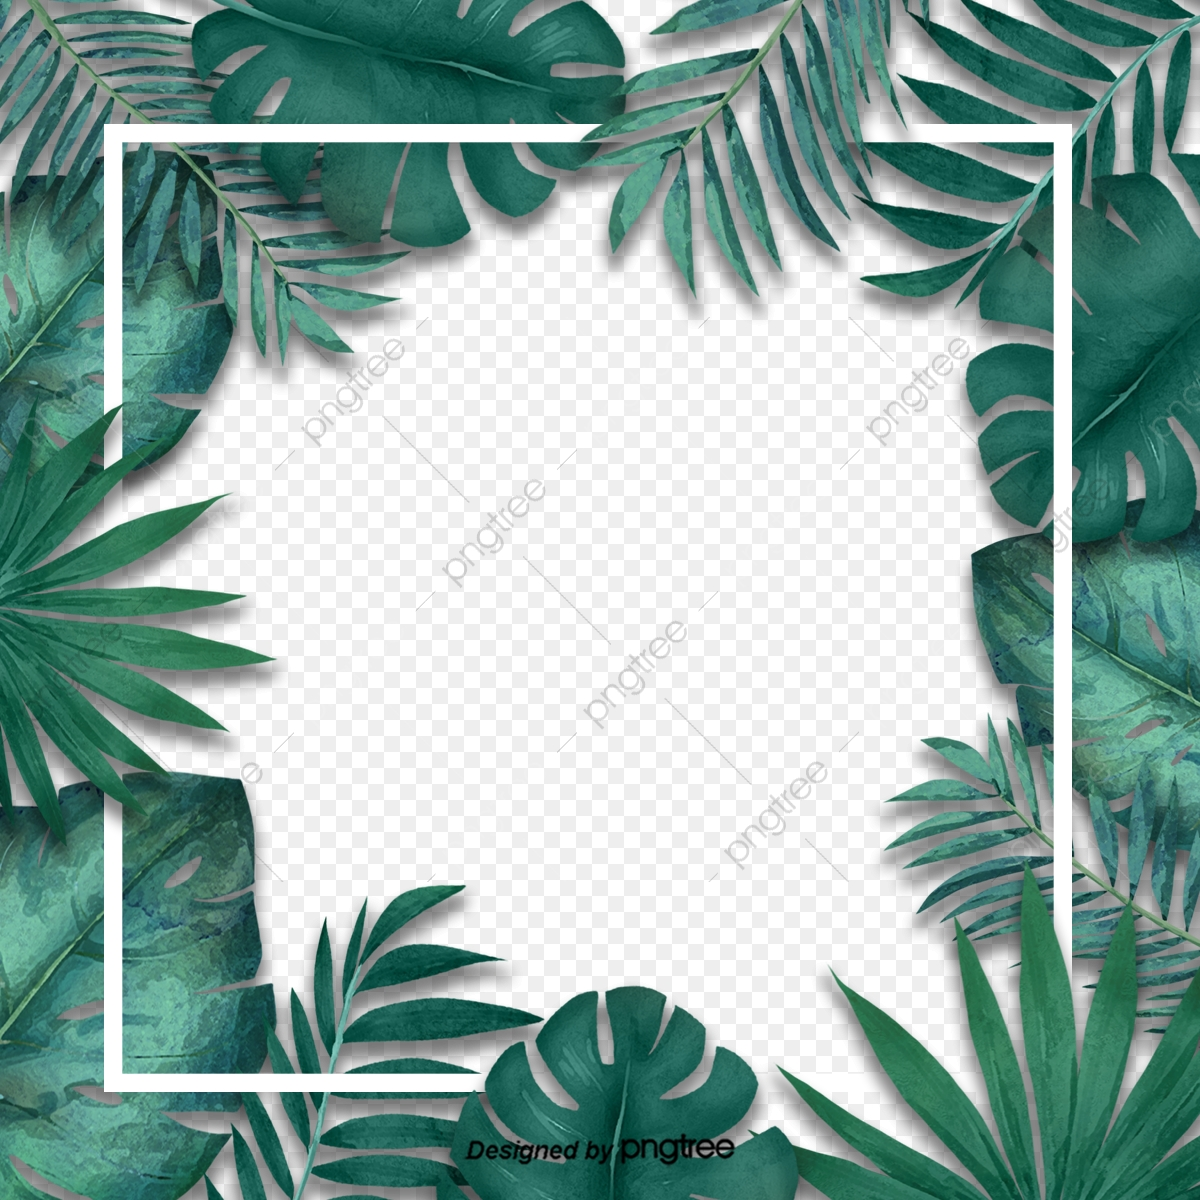 Simple Fresh Tropical Palm Leaf Border Originality Leaf Palm Leaf Border Png Transparent Clipart Image And Psd File For Free Download Pikbest has 3796 tropical leaves design images templates for free. https pngtree com freepng simple fresh tropical palm leaf border 3787332 html